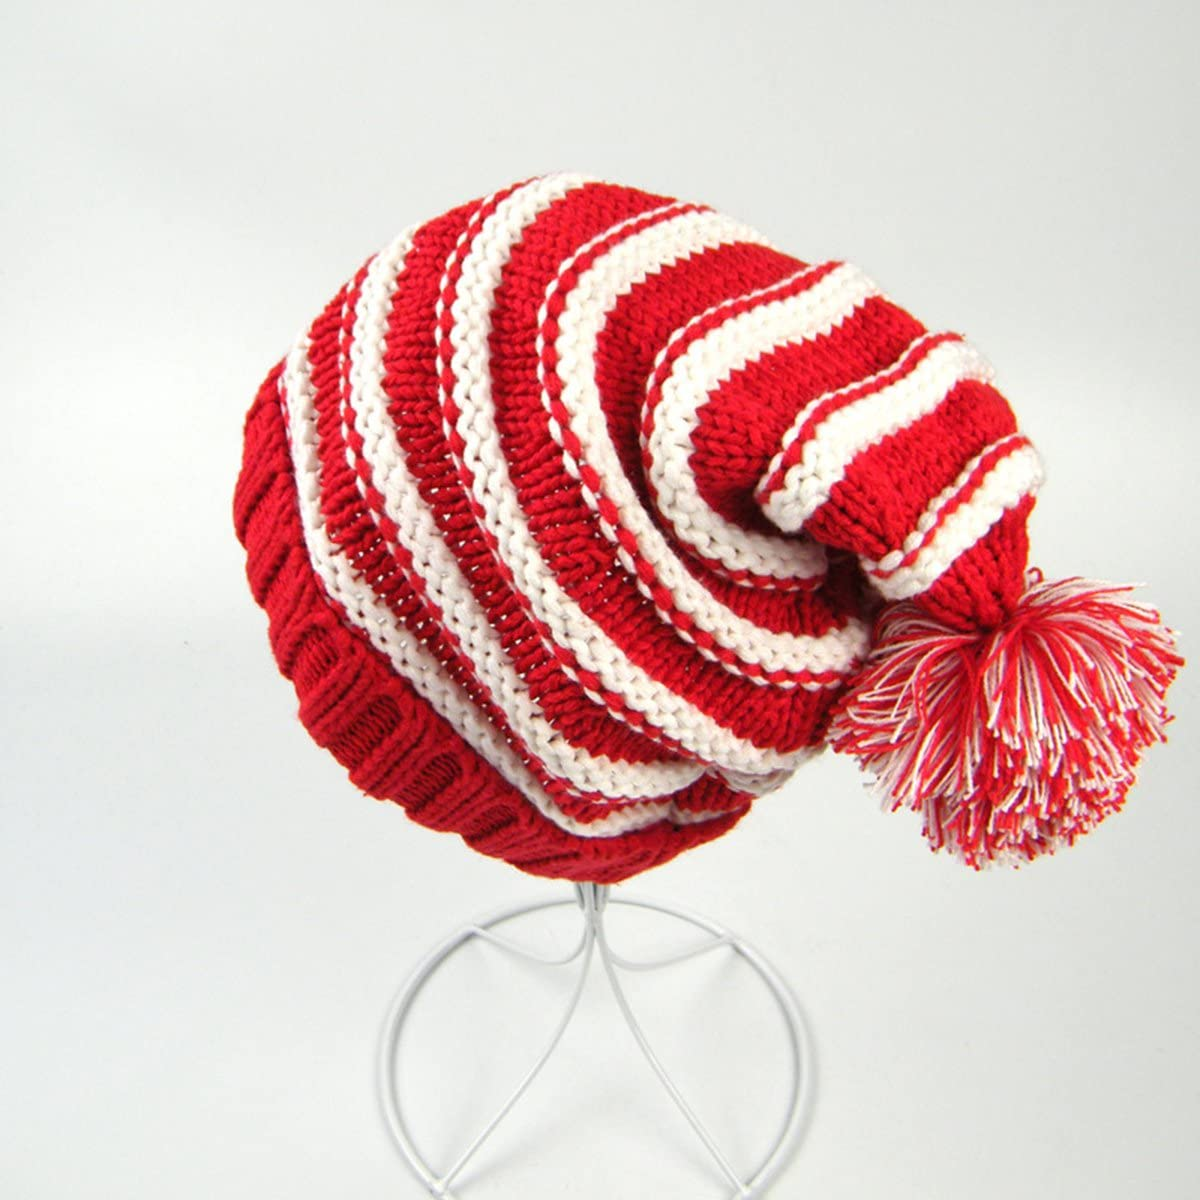 Red White LUOEM Classic Warm Adorable Kids Striped Knit Winter Pom Pom Hat Beanie Hats for Christmas